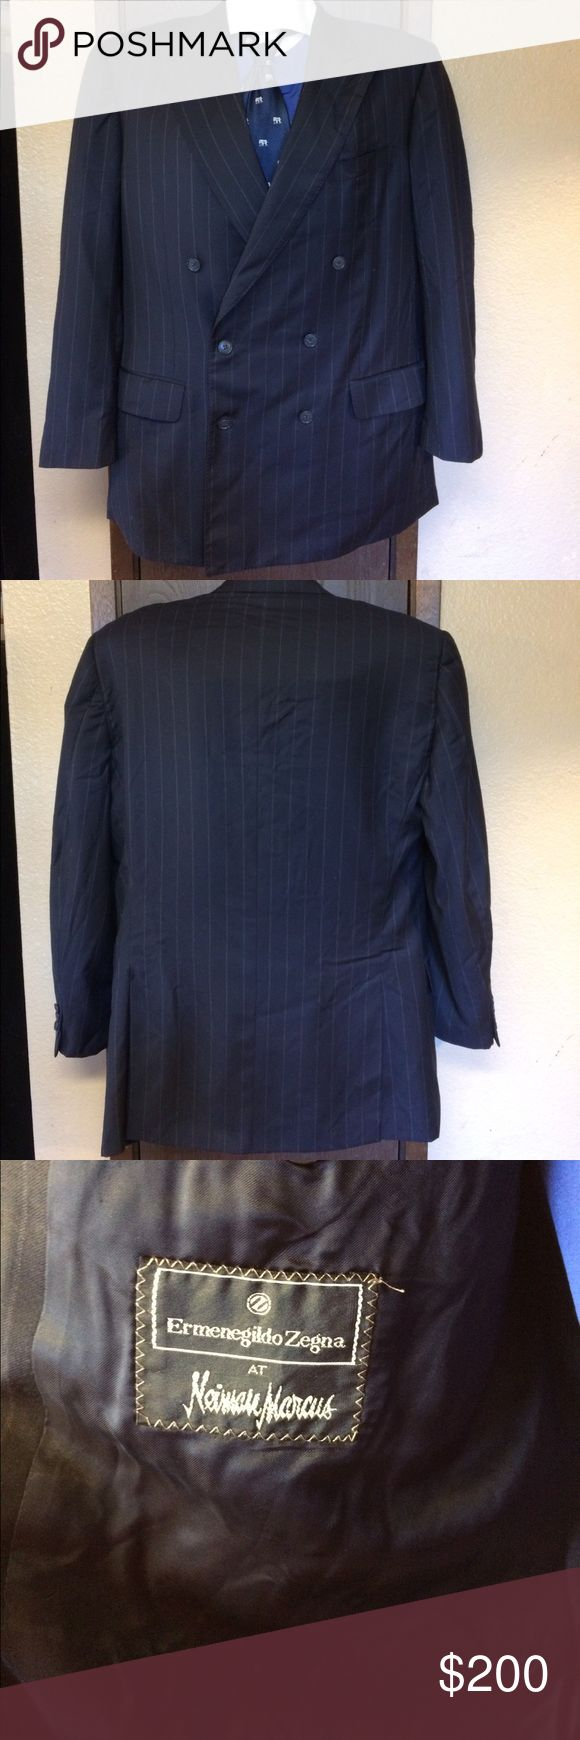 """Ermenegildo Zegna Super 100's Pinstripe Sport Coat Ermenegildo Zegna Fine Worsted Super 100's Double Breasted Sport Coat. White on Black Pinstripe. Size 44L. Measures 46"""" Chest, 19.5"""" Shoulders, and 34"""" in Length.  Made in Italy. In very good condition, with no stains or holes  Ermenegildo Zegna Suits & Blazers Sport Coats & Blazers"""